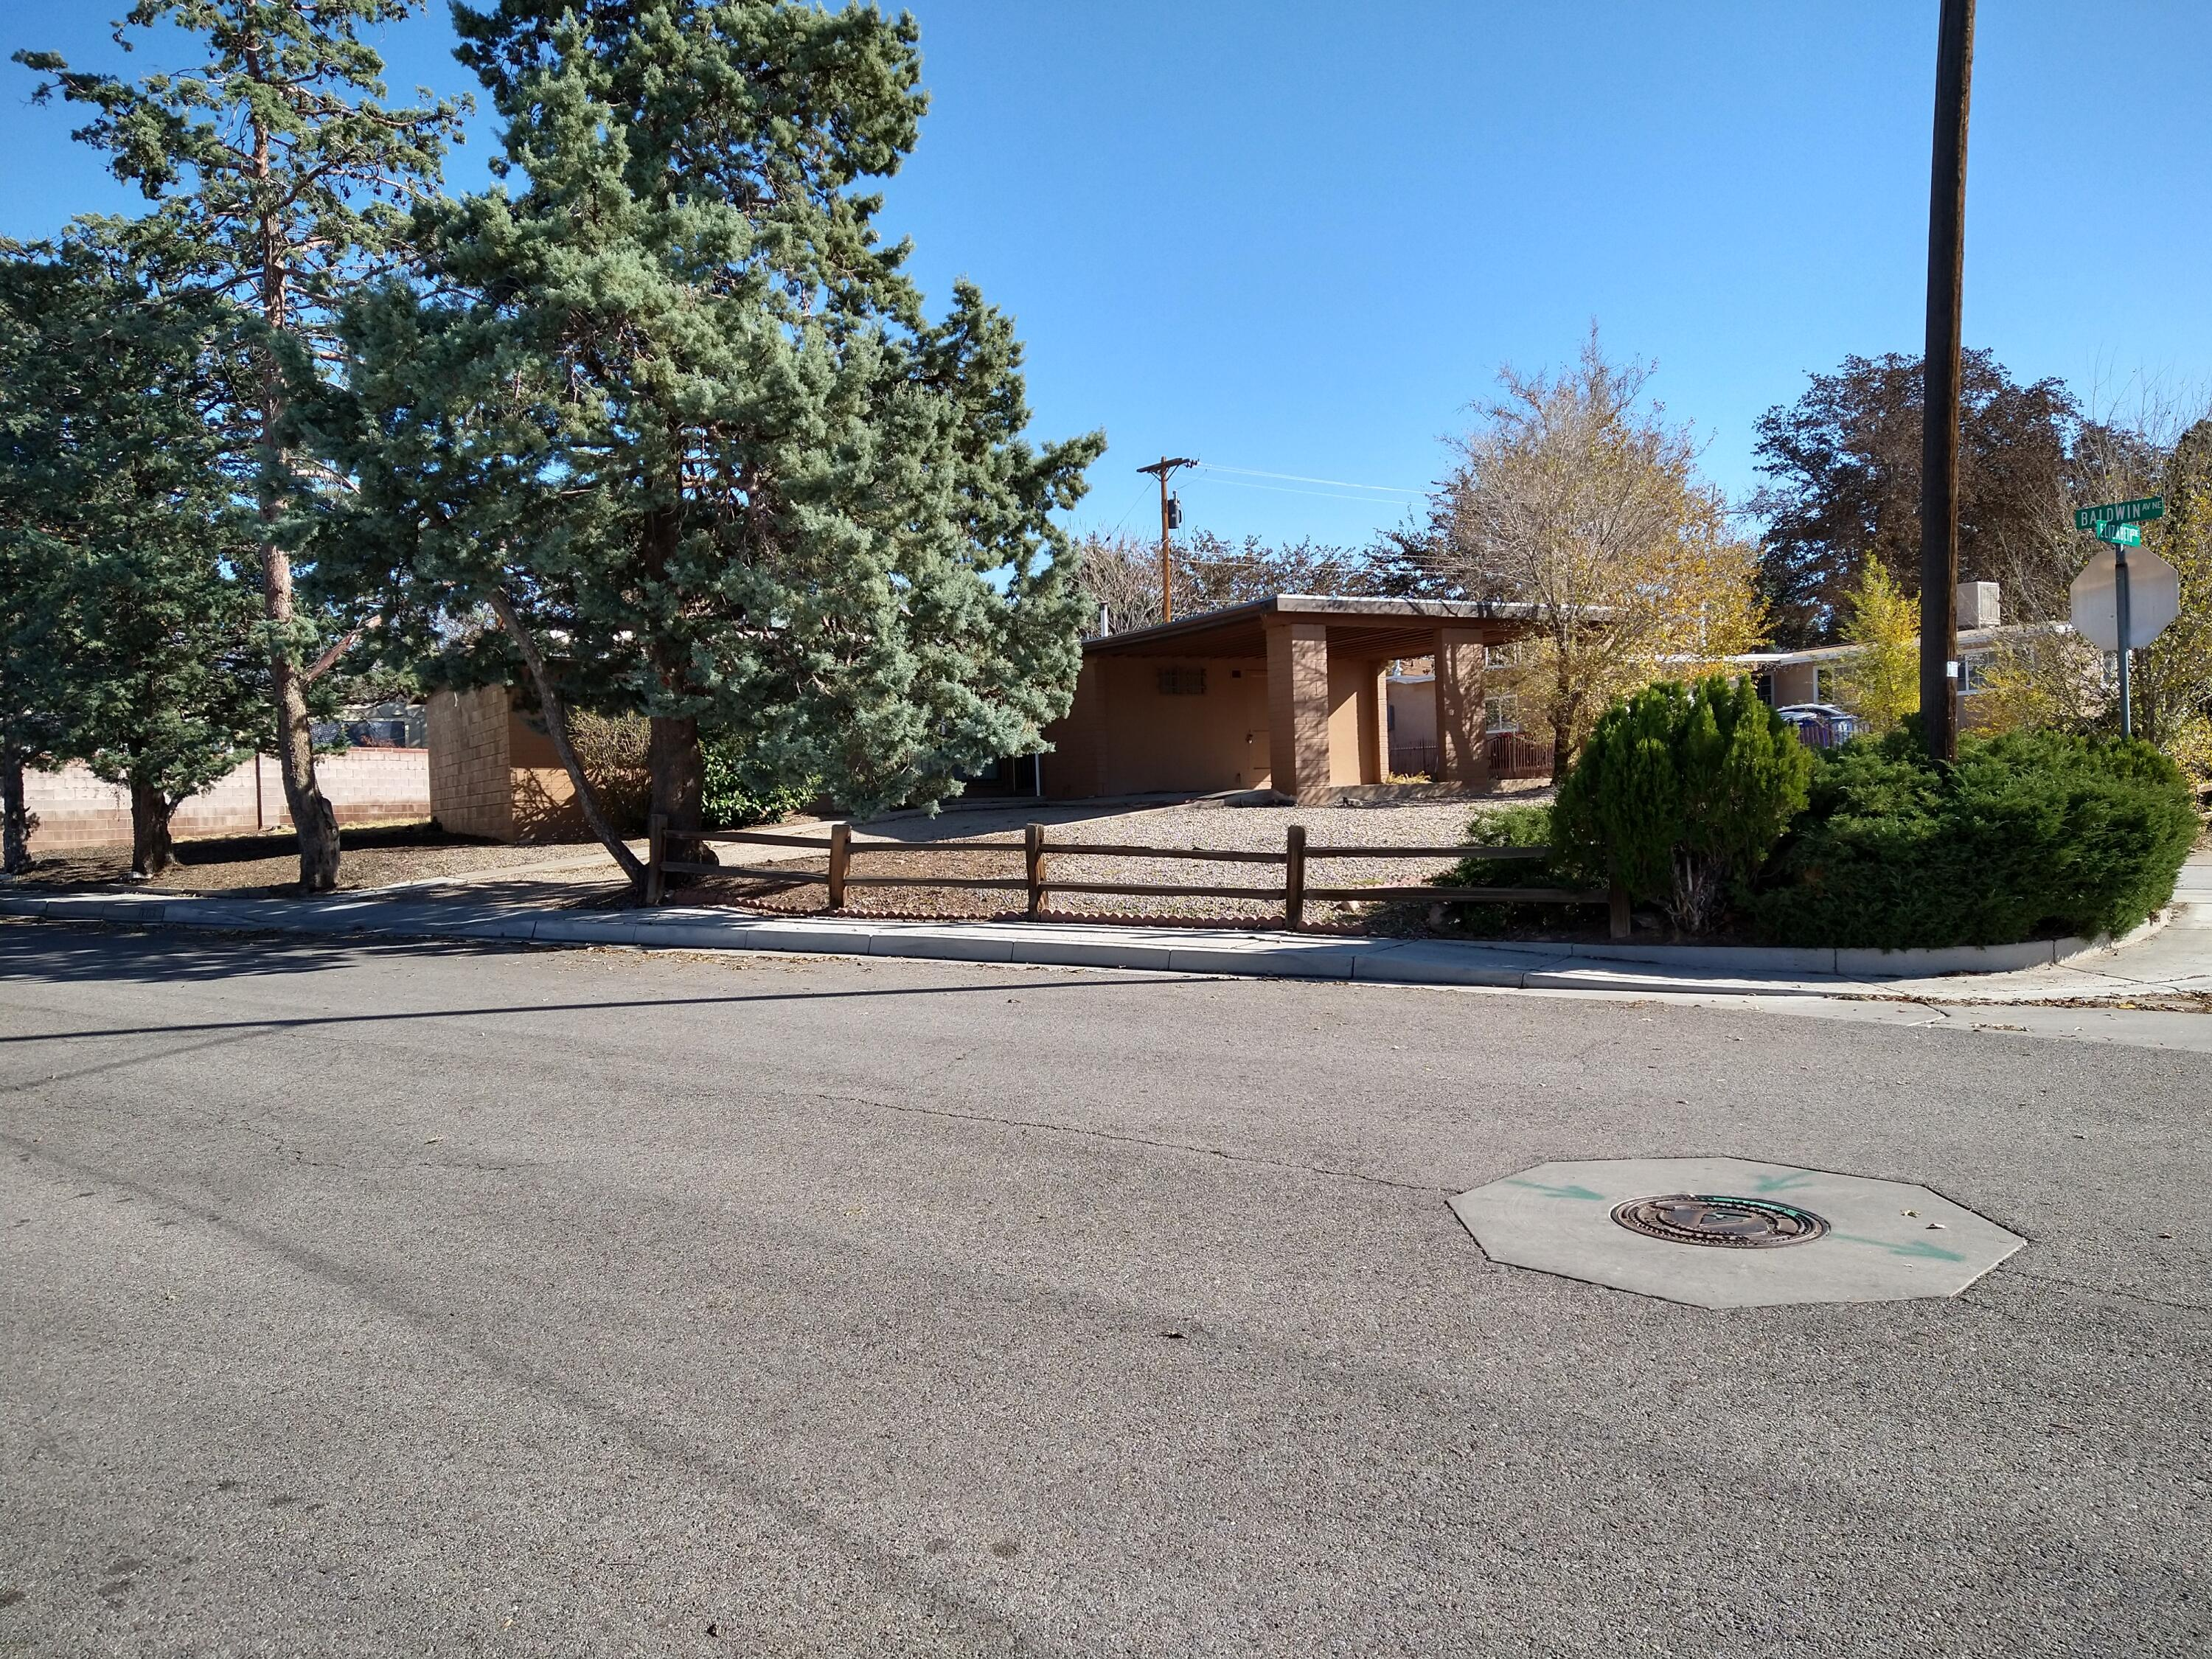 Wonderful starter home, on huge corner lot.  Den with fireplace (could be 4th bedroom).  Large backyard for entertaining.  New windows installed in March.  Lots of potential.  Nice size rooms. Lovely neighborhood. Near schools and bus line. No sign in yard.